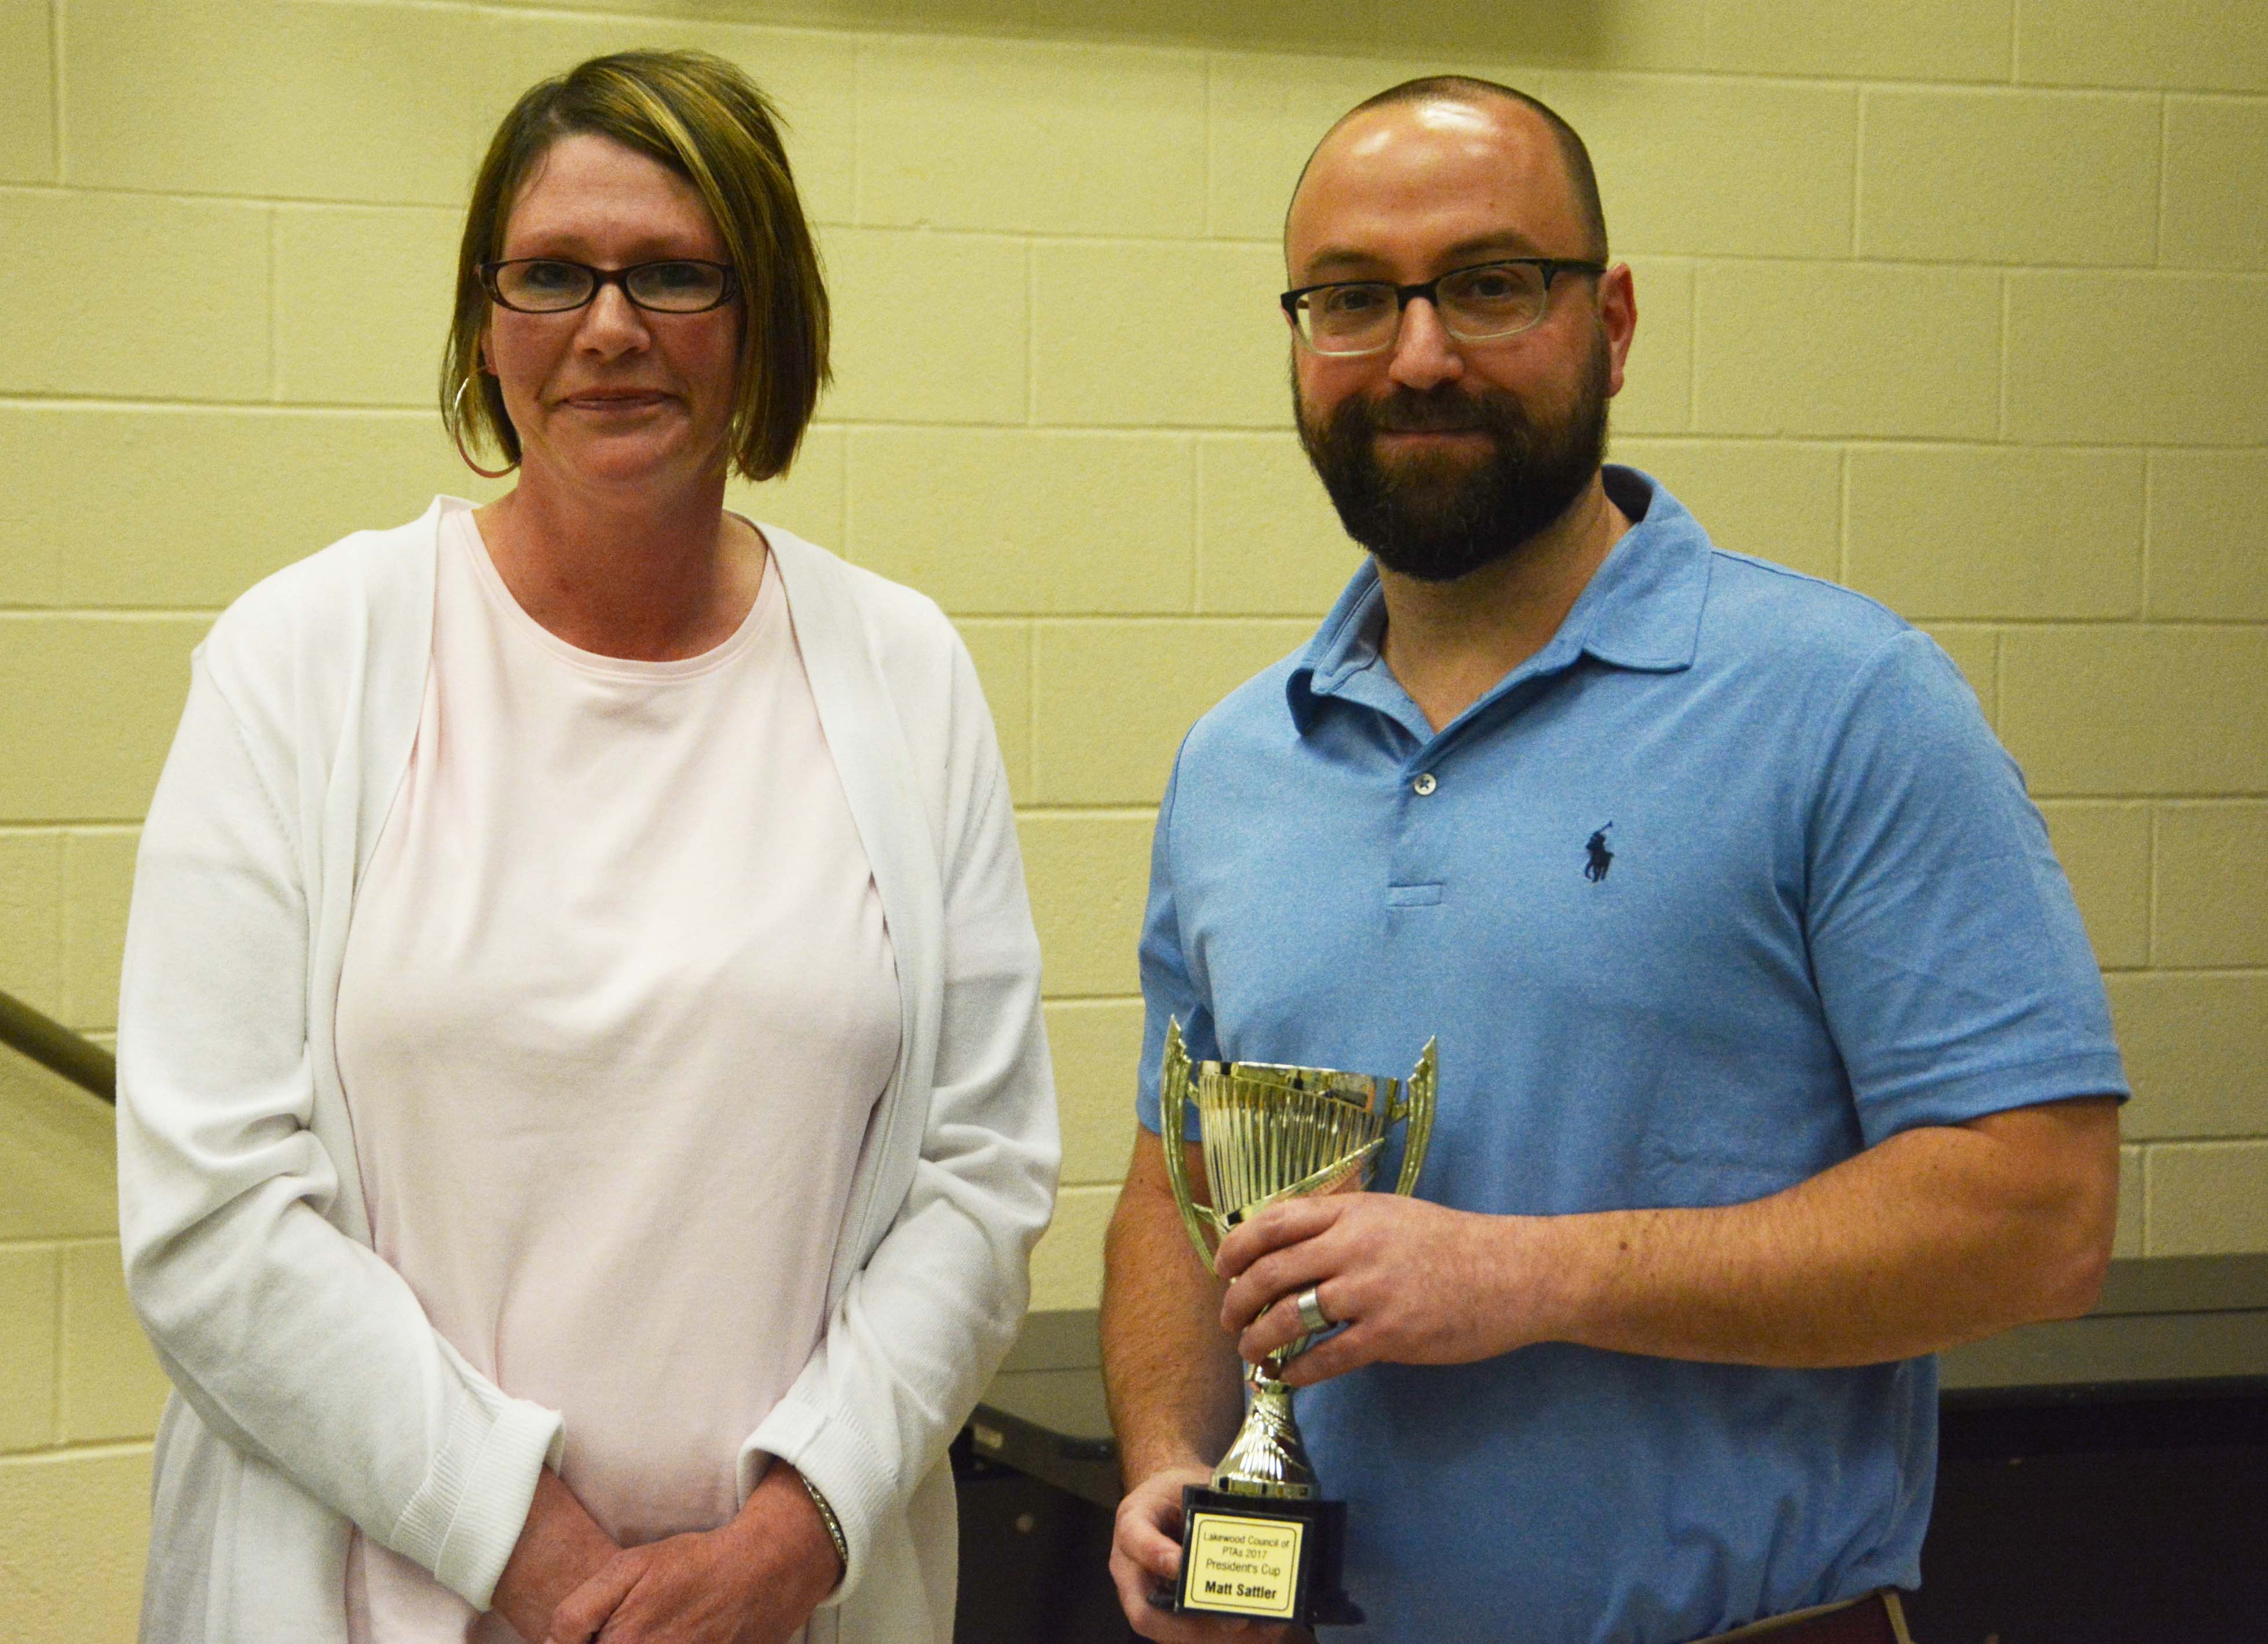 Council President Kim Walcheck with President's Cup winner Matt Sattler of Grant PTA.